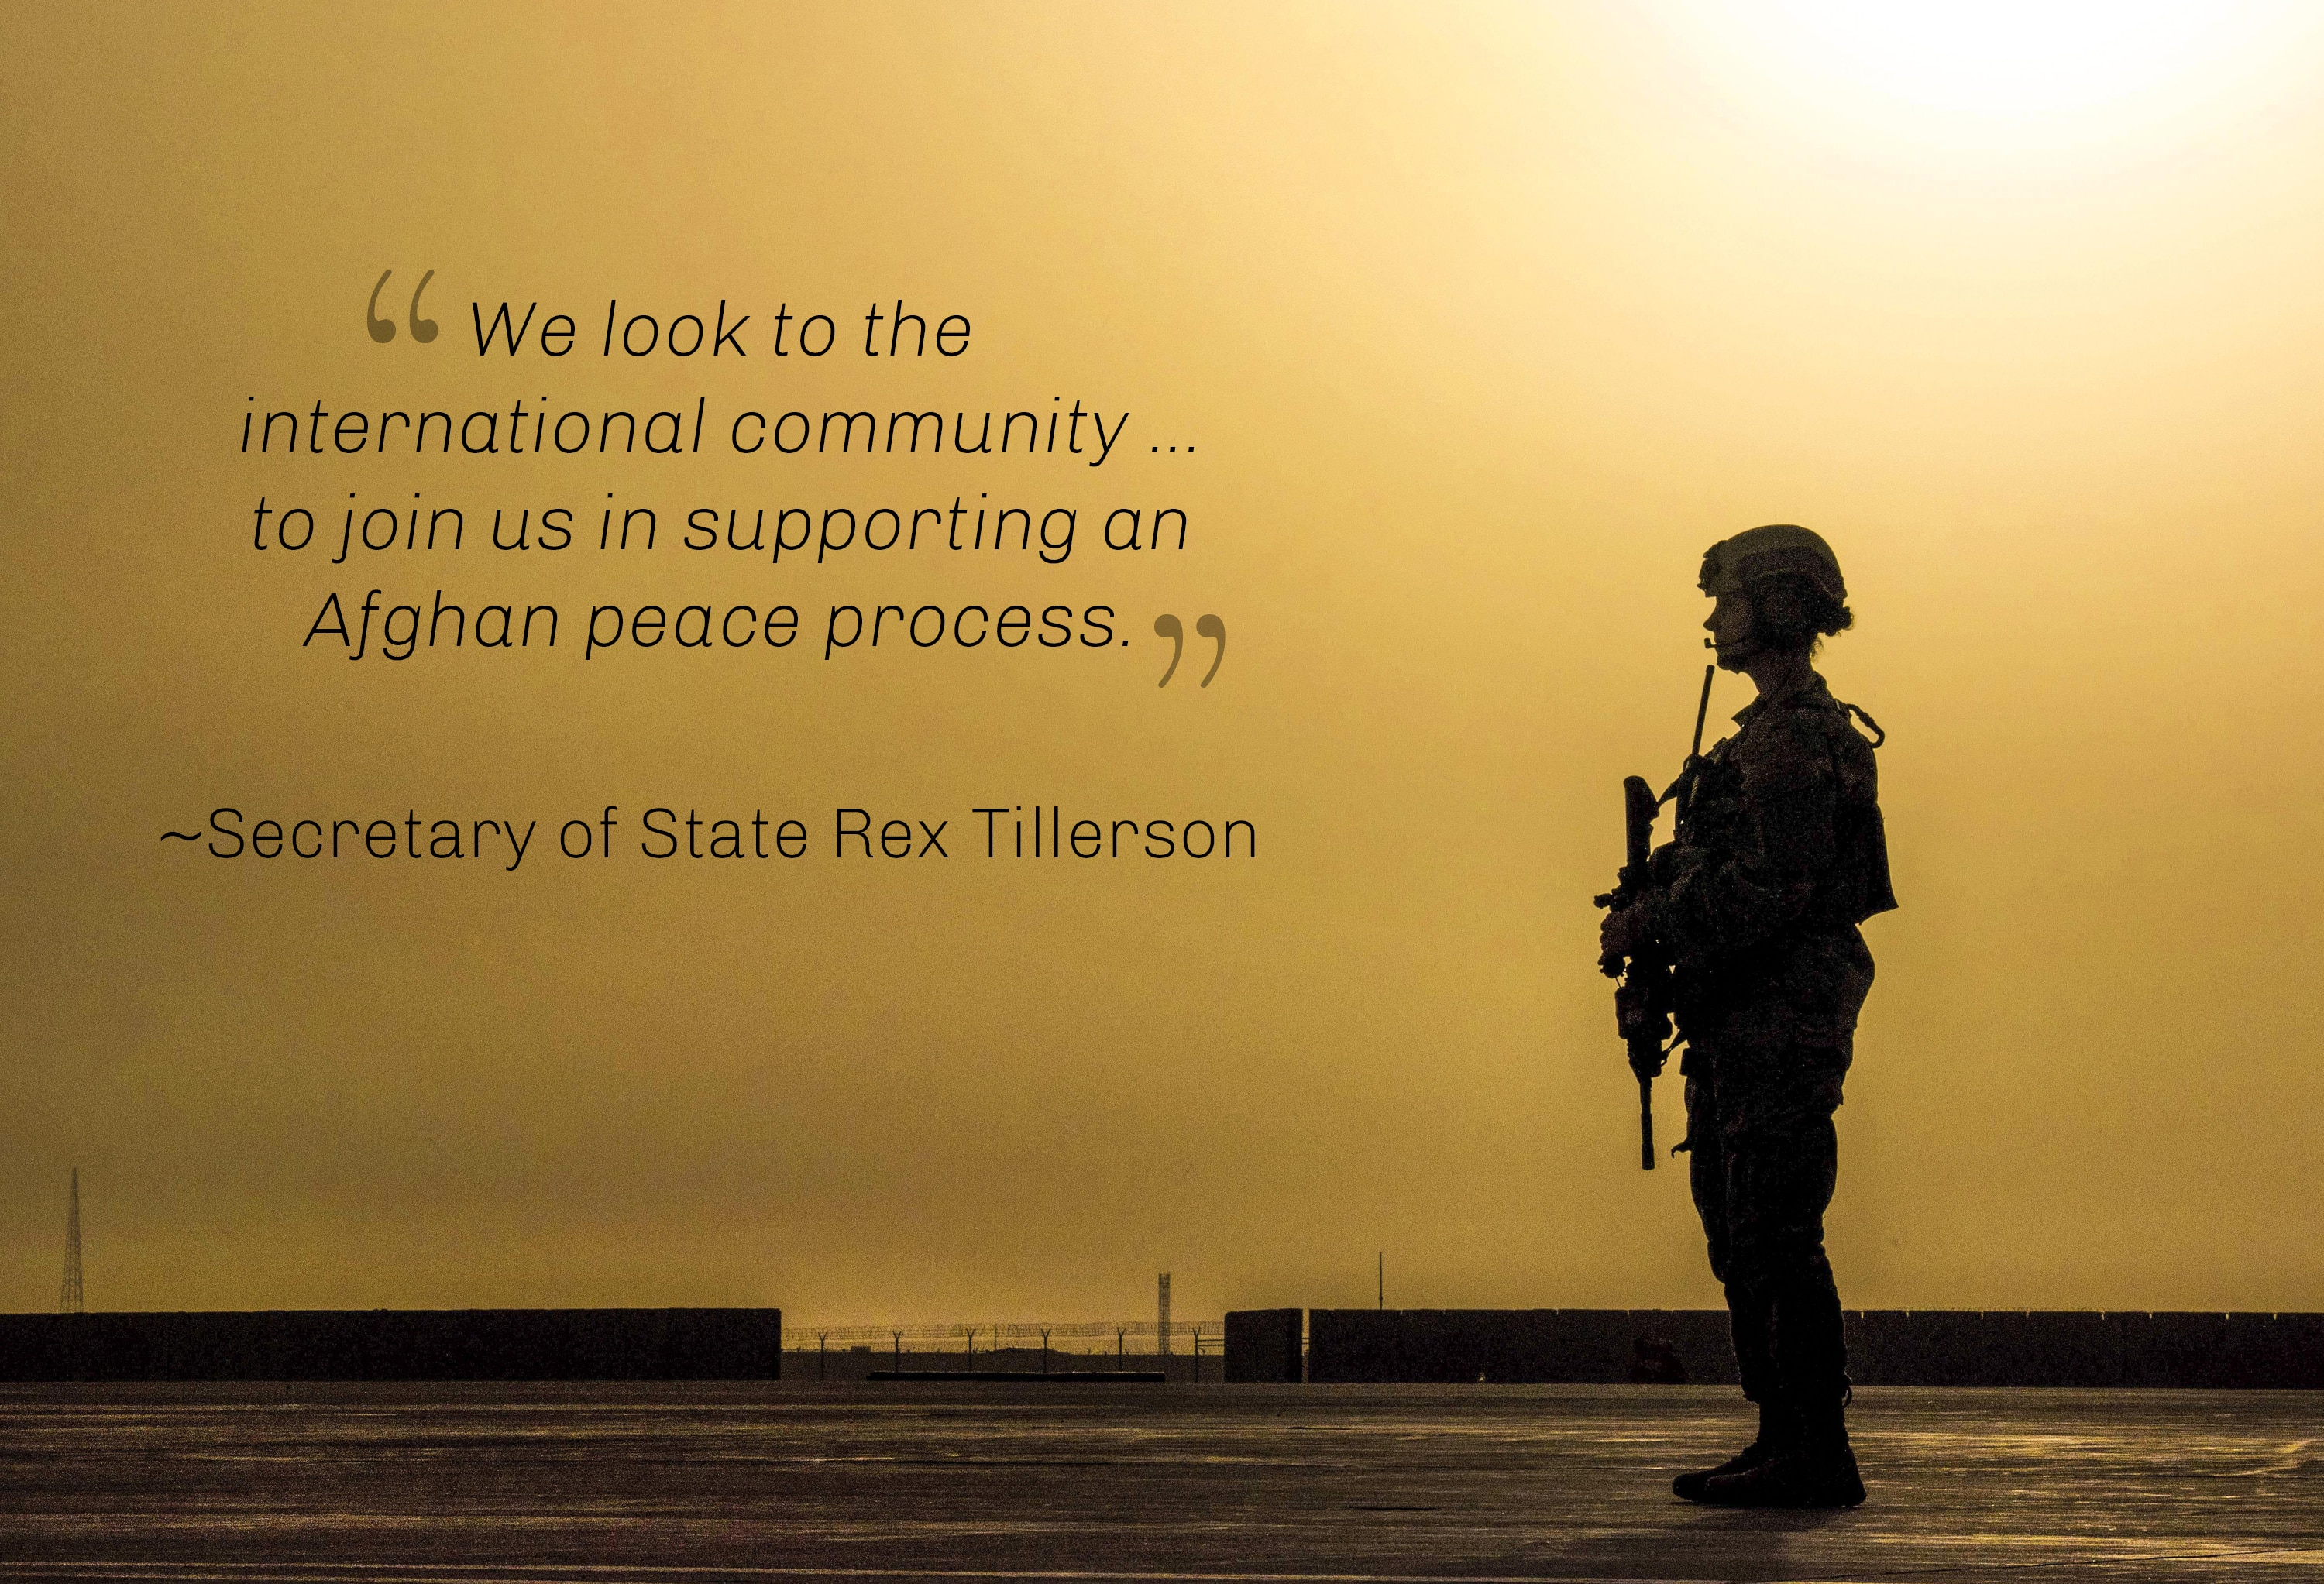 Silhouette of soldier and wall with Secretary Tillerson's words on international support for an Afghan peace process (U.S. Air Force)